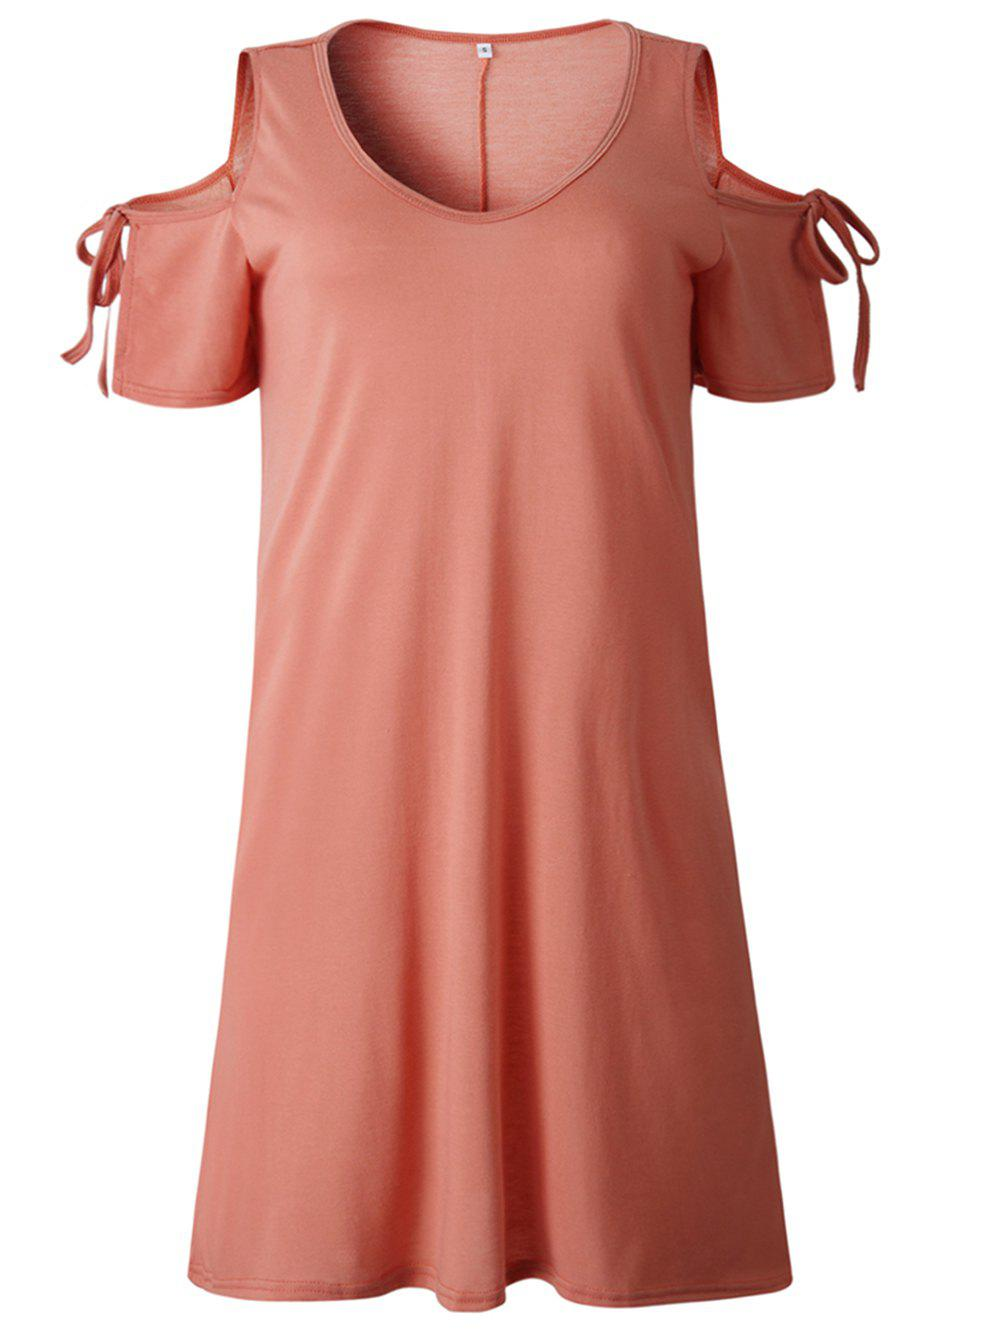 Unique 2019 New Womens Cold Shoulder Tunic Top T-Shirt Swing Dress